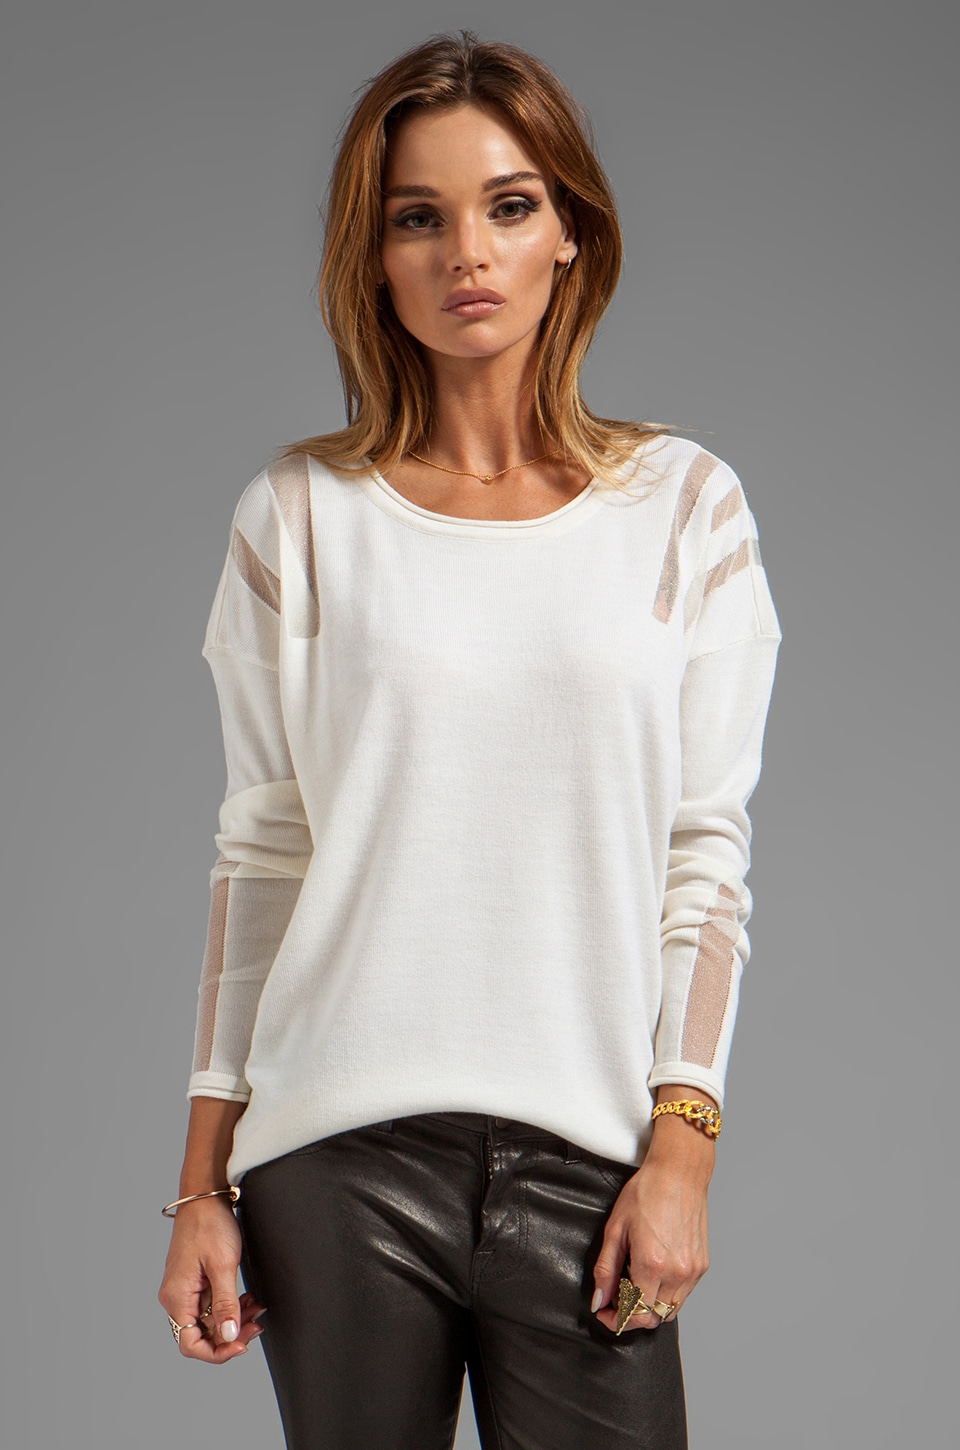 Catherine Malandrino Aviva Long Sleeve Pointelle Top in Ivory